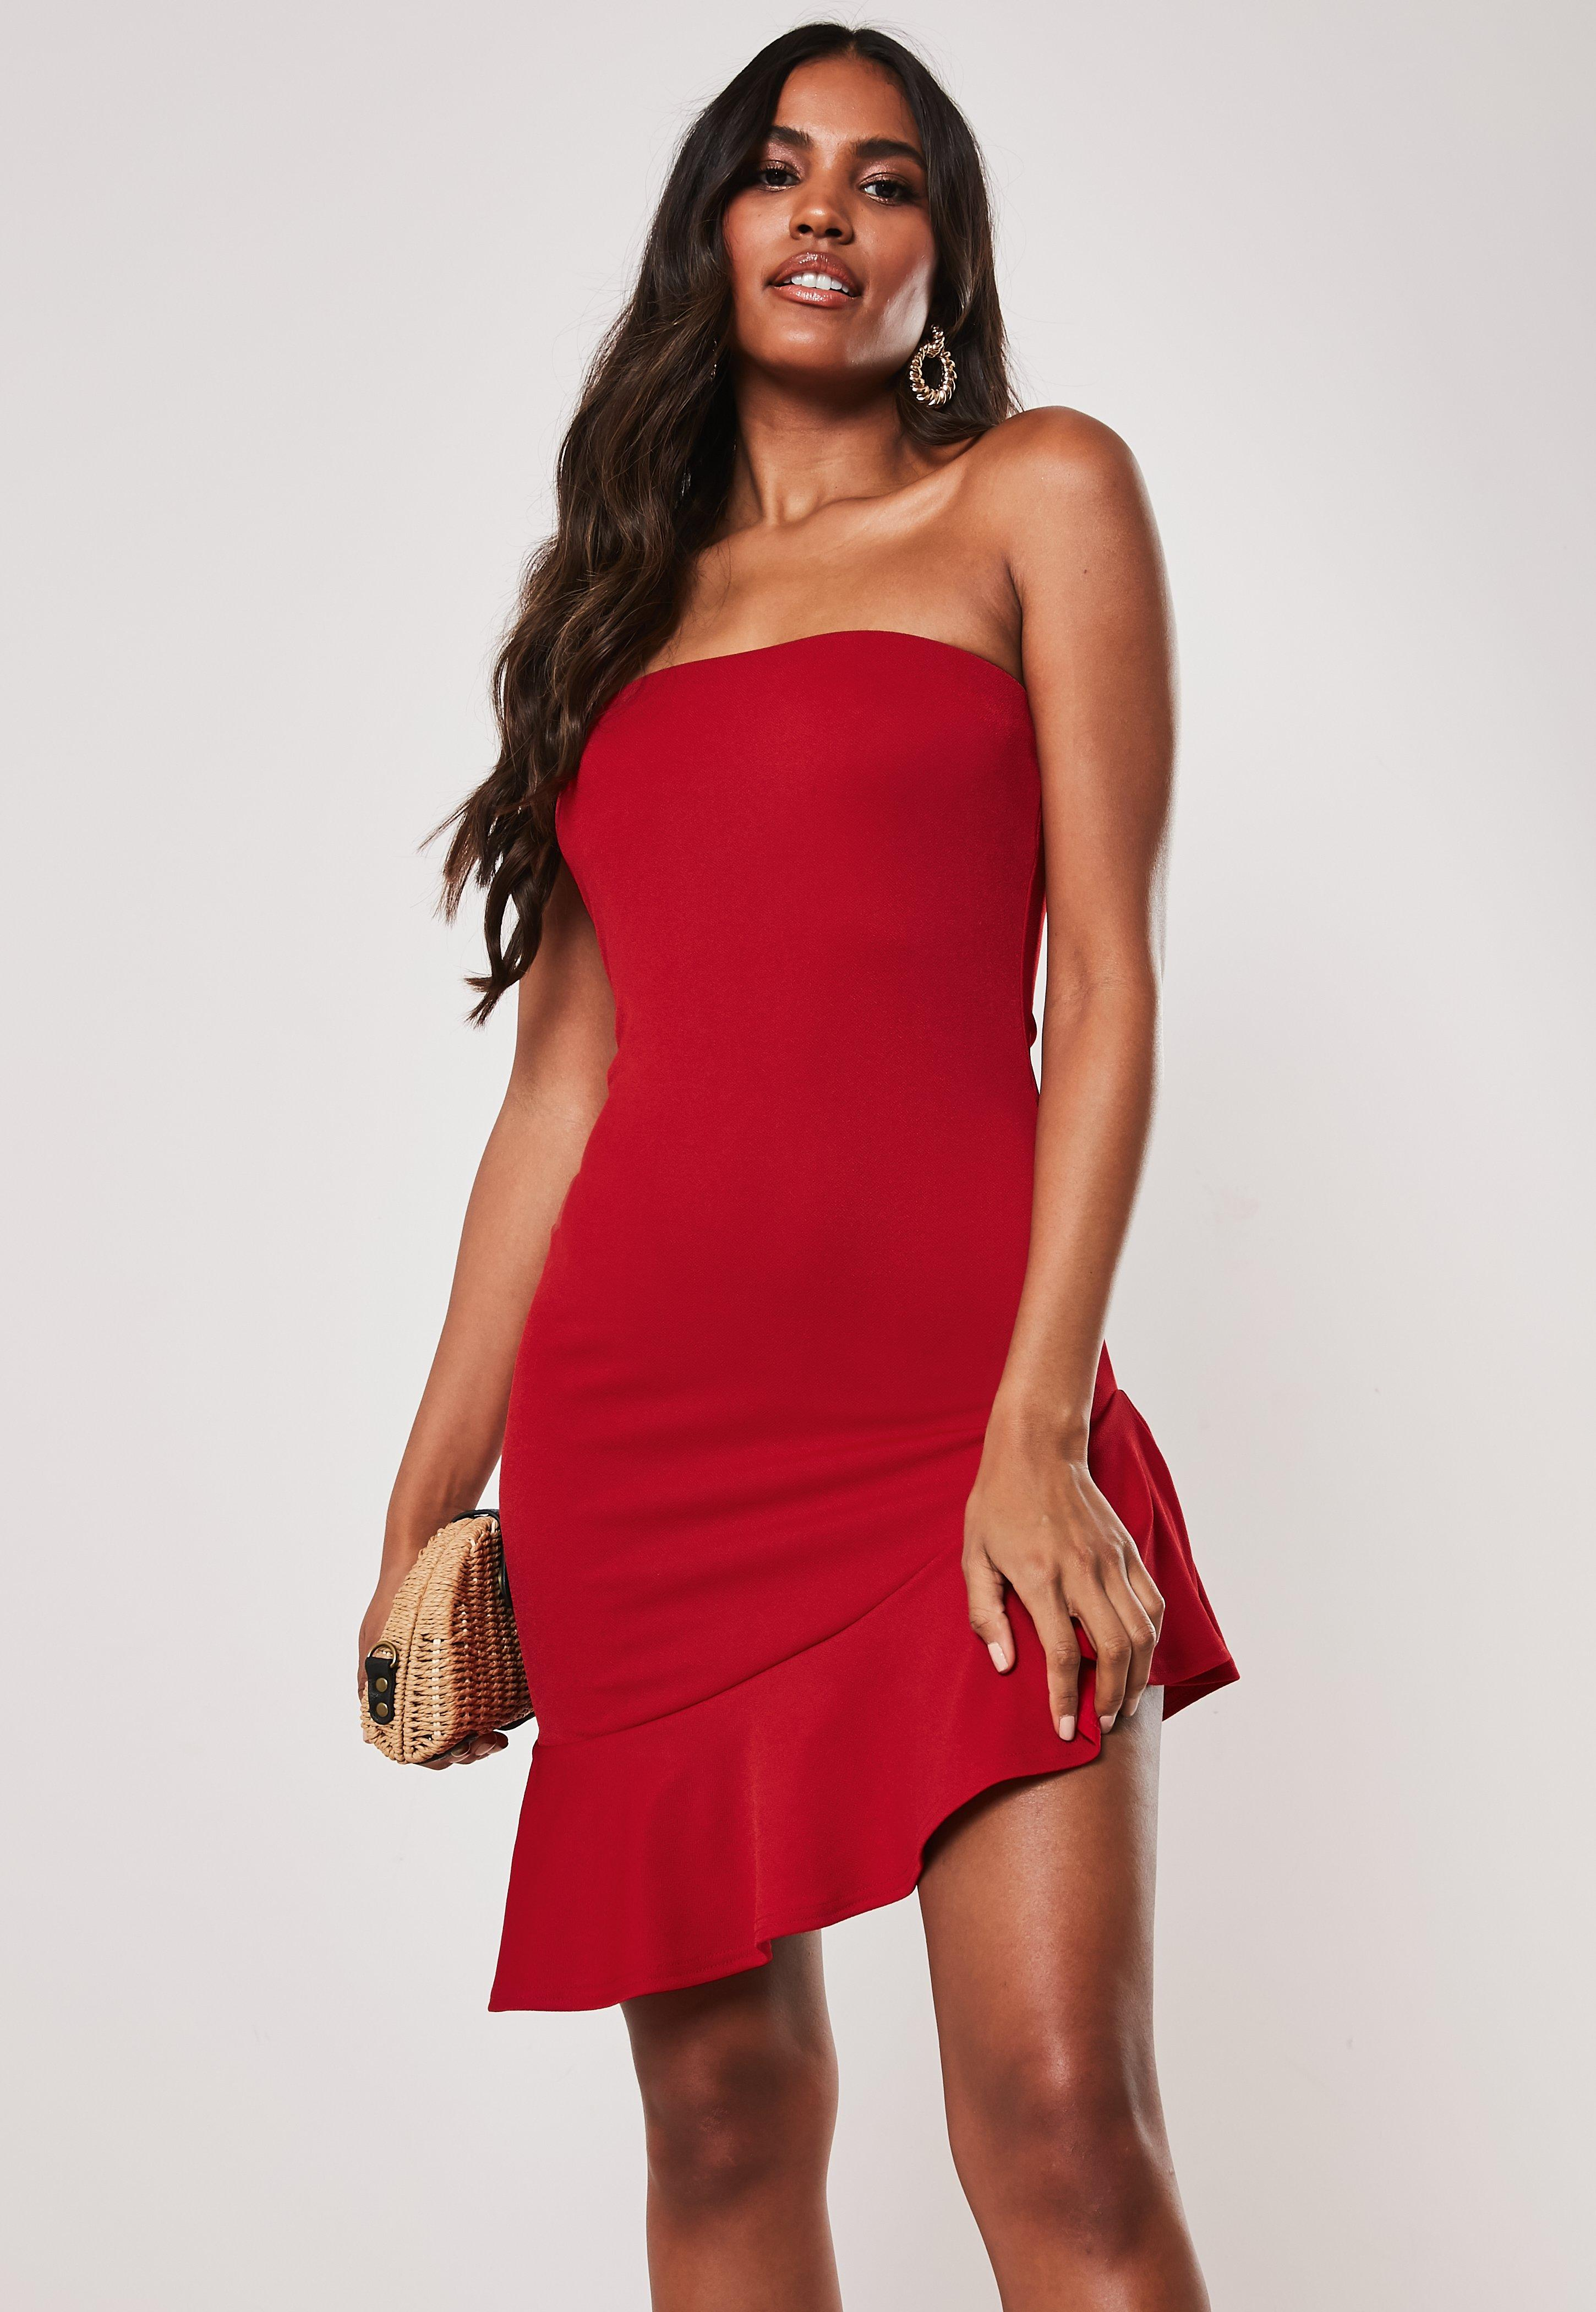 52688d2f6 Strapless Dresses - Bandeau & Tube Top Dresses | Missguided